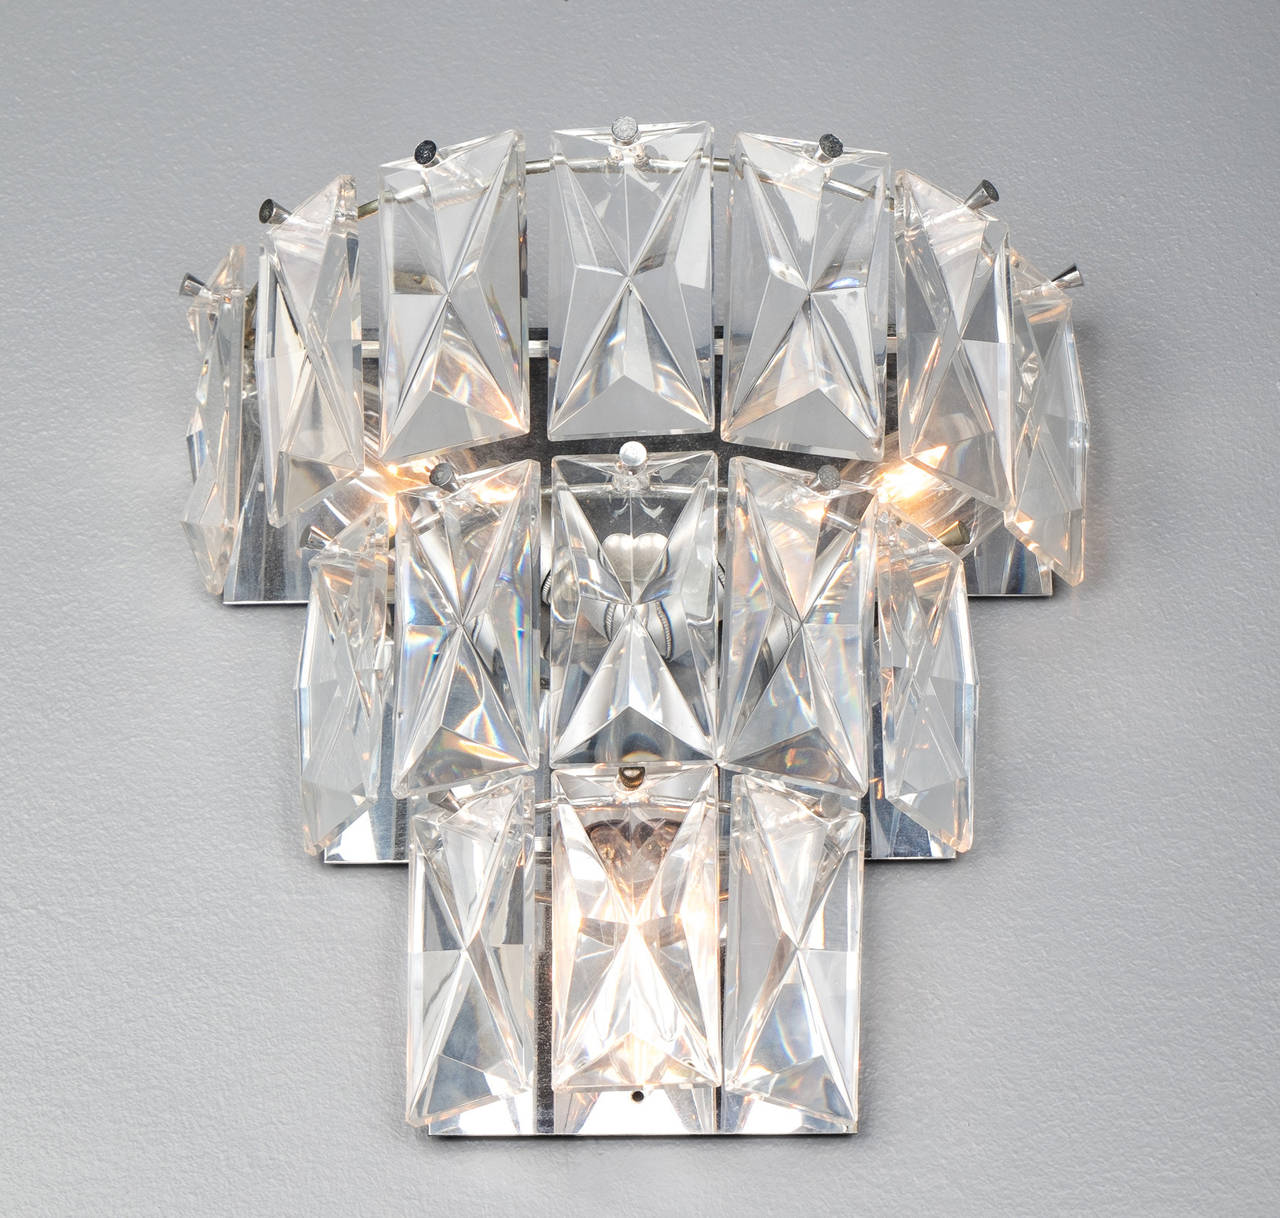 Wall Sconces Crystal : Baccarat Crystal Wall Sconce at 1stdibs